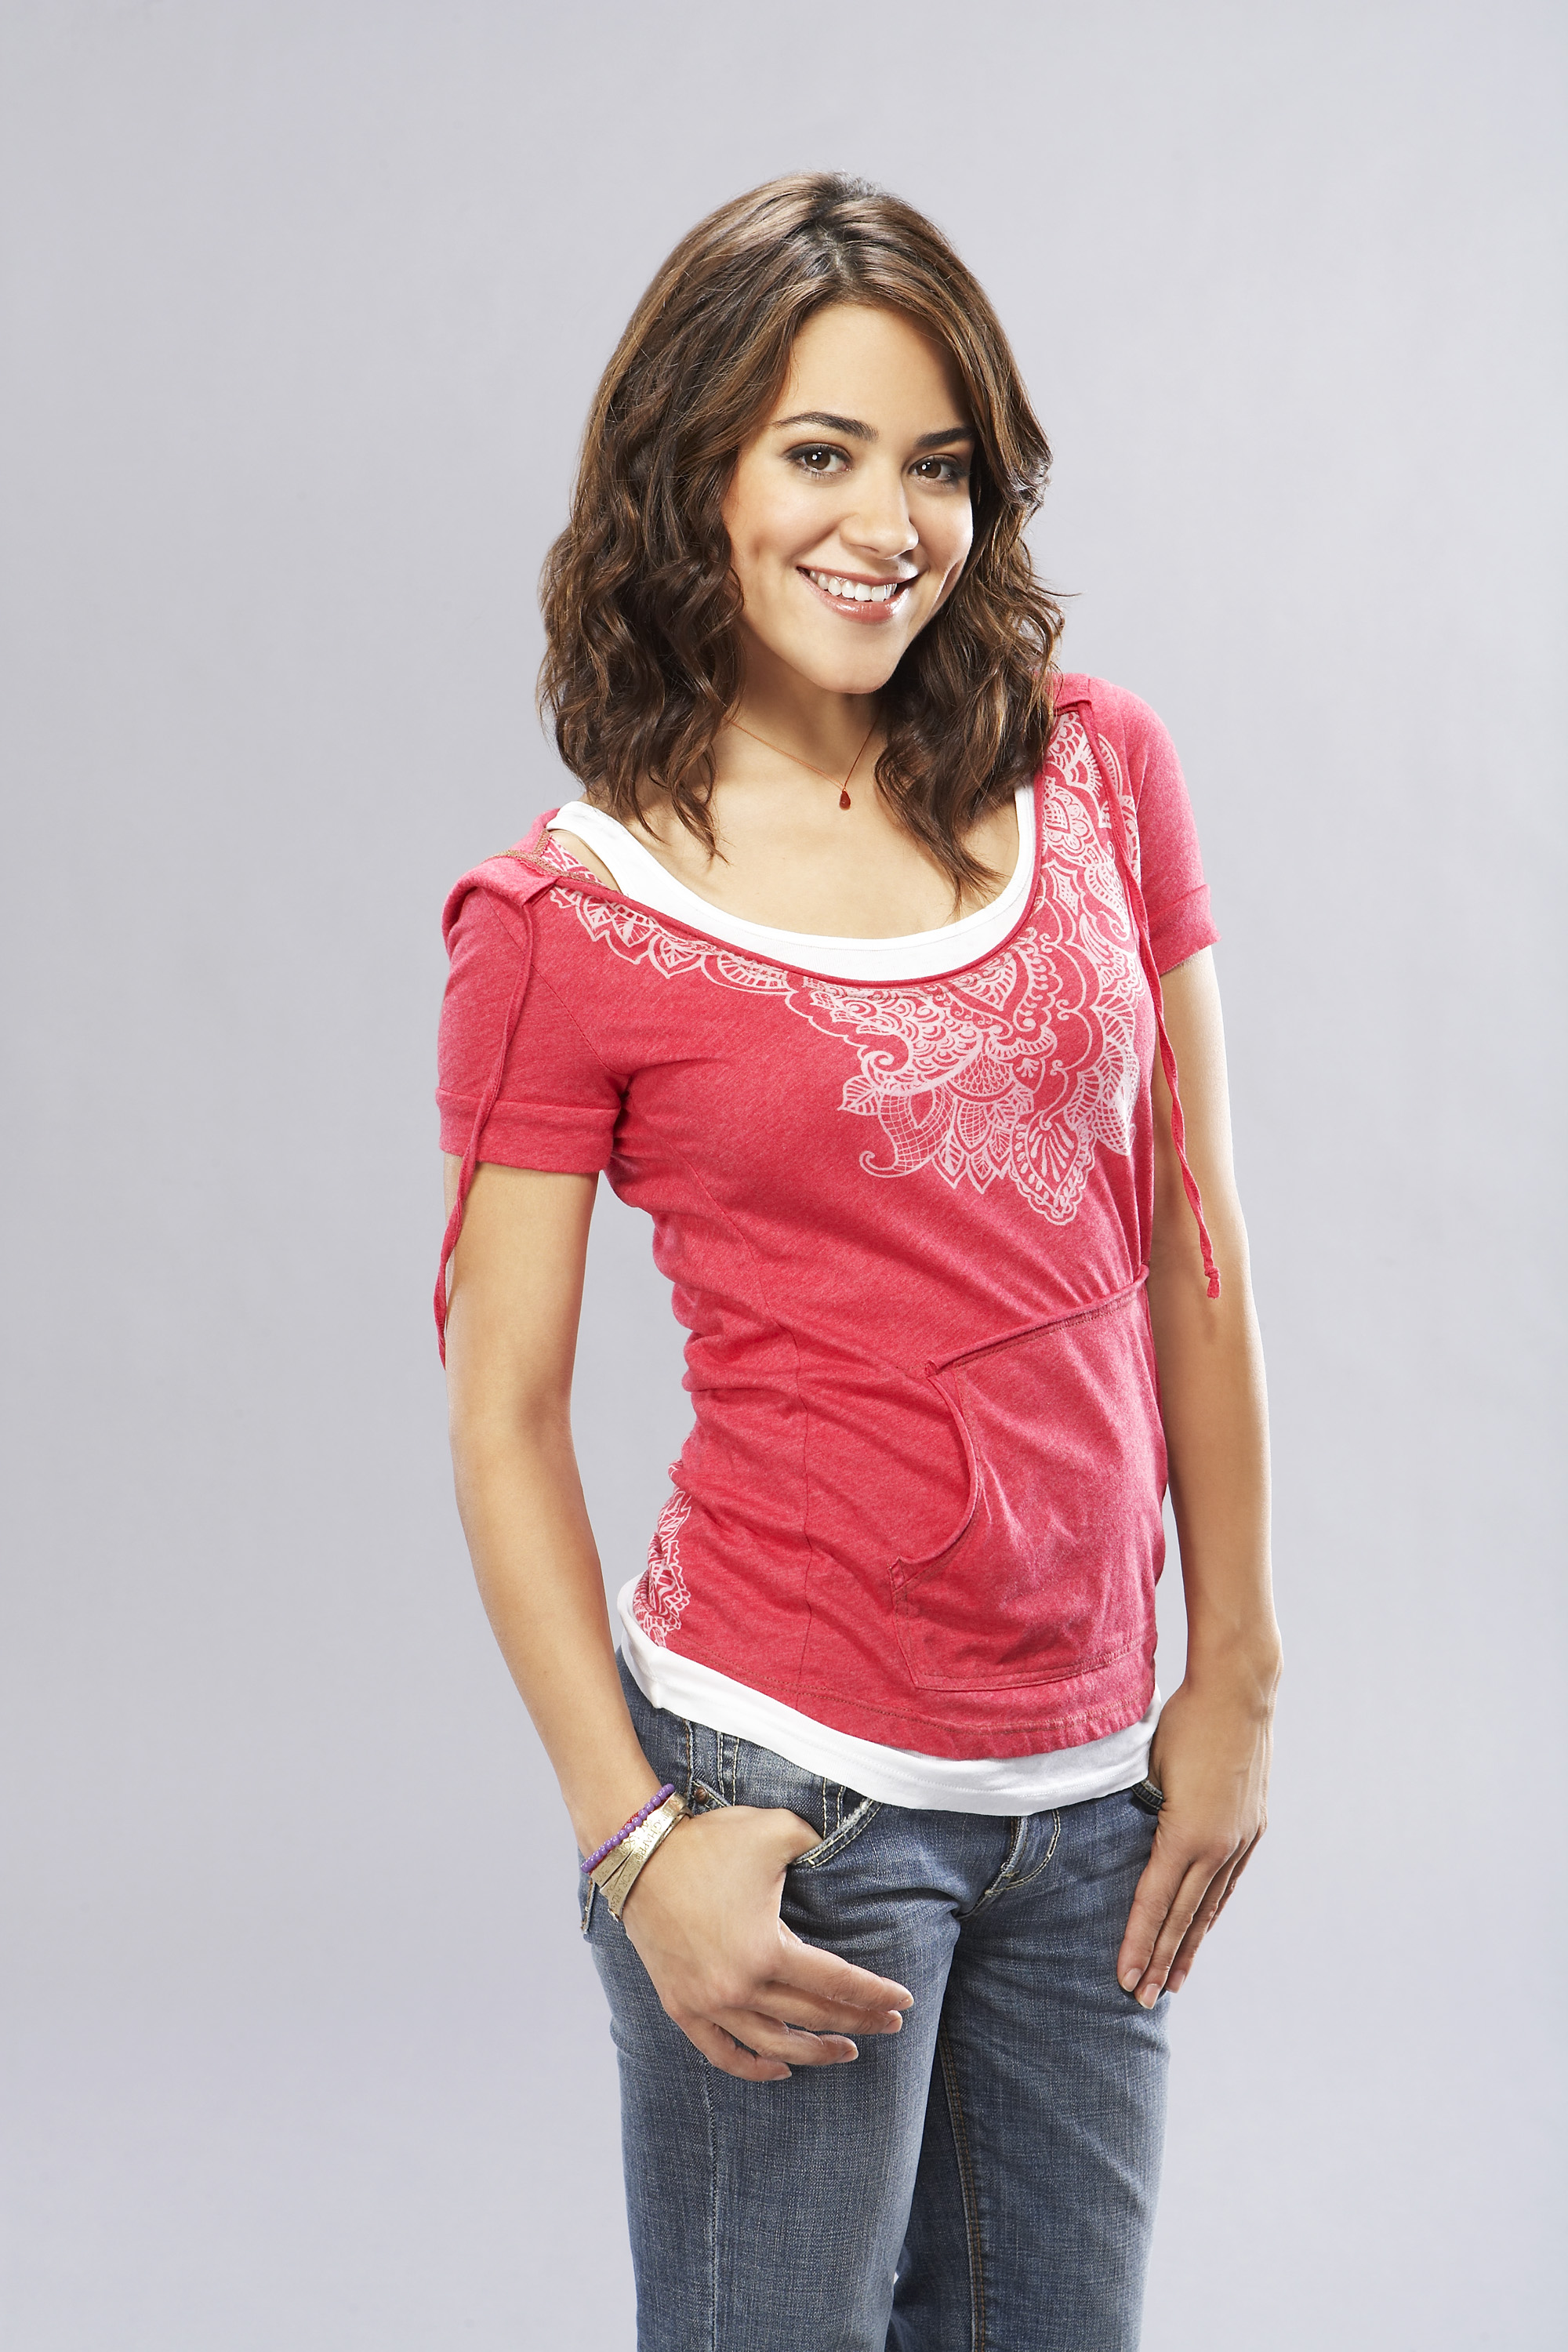 camille guaty movies and tv shows